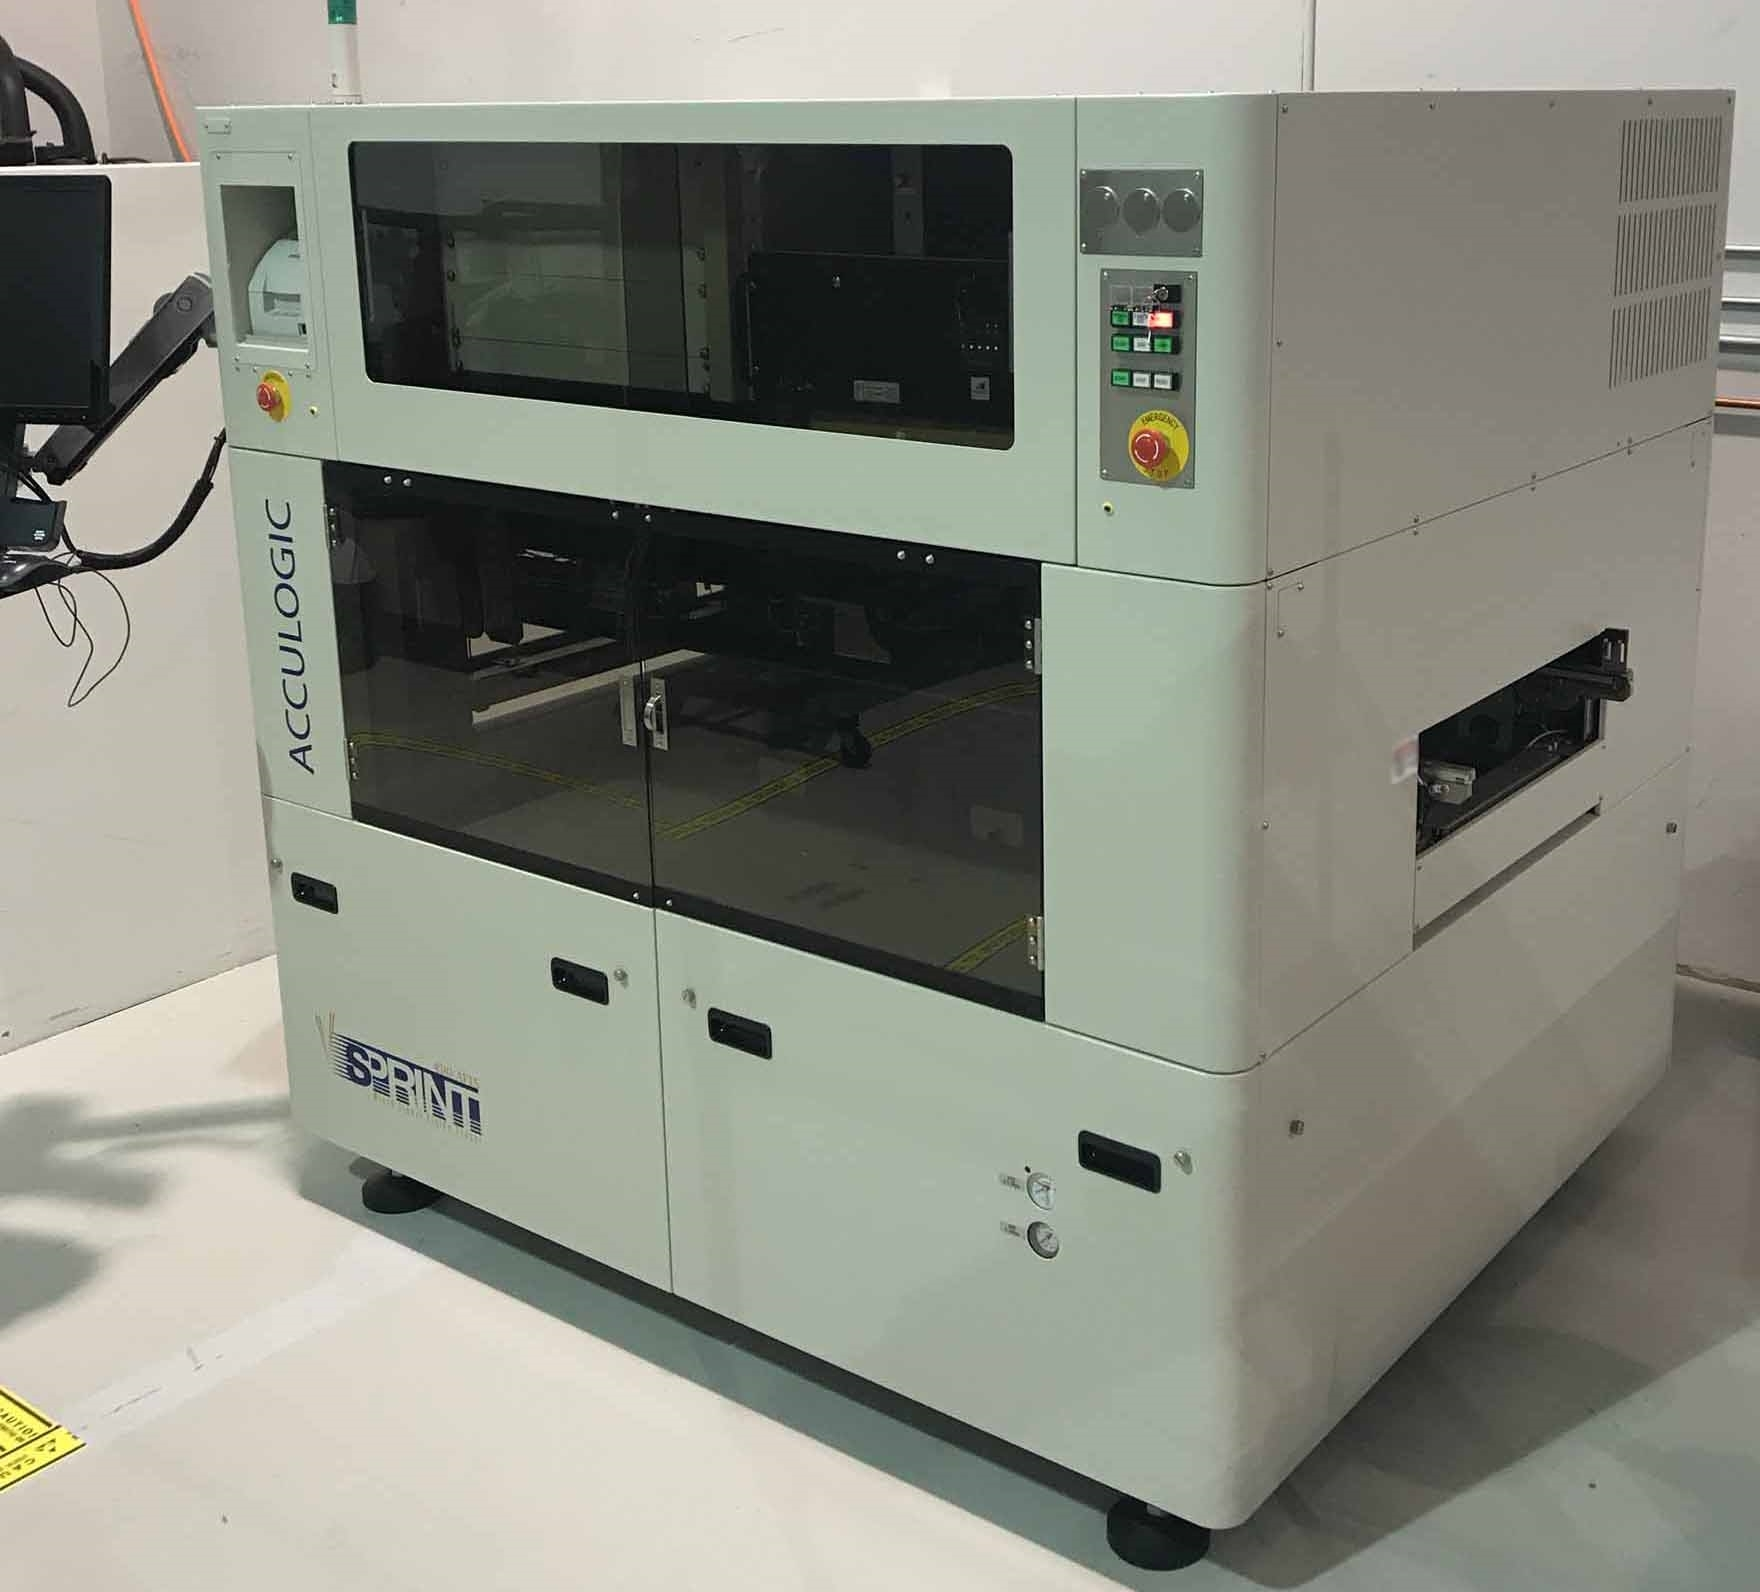 ACCULOGIC Sprint FLS 4510 For Sale (used, Price) #9223027